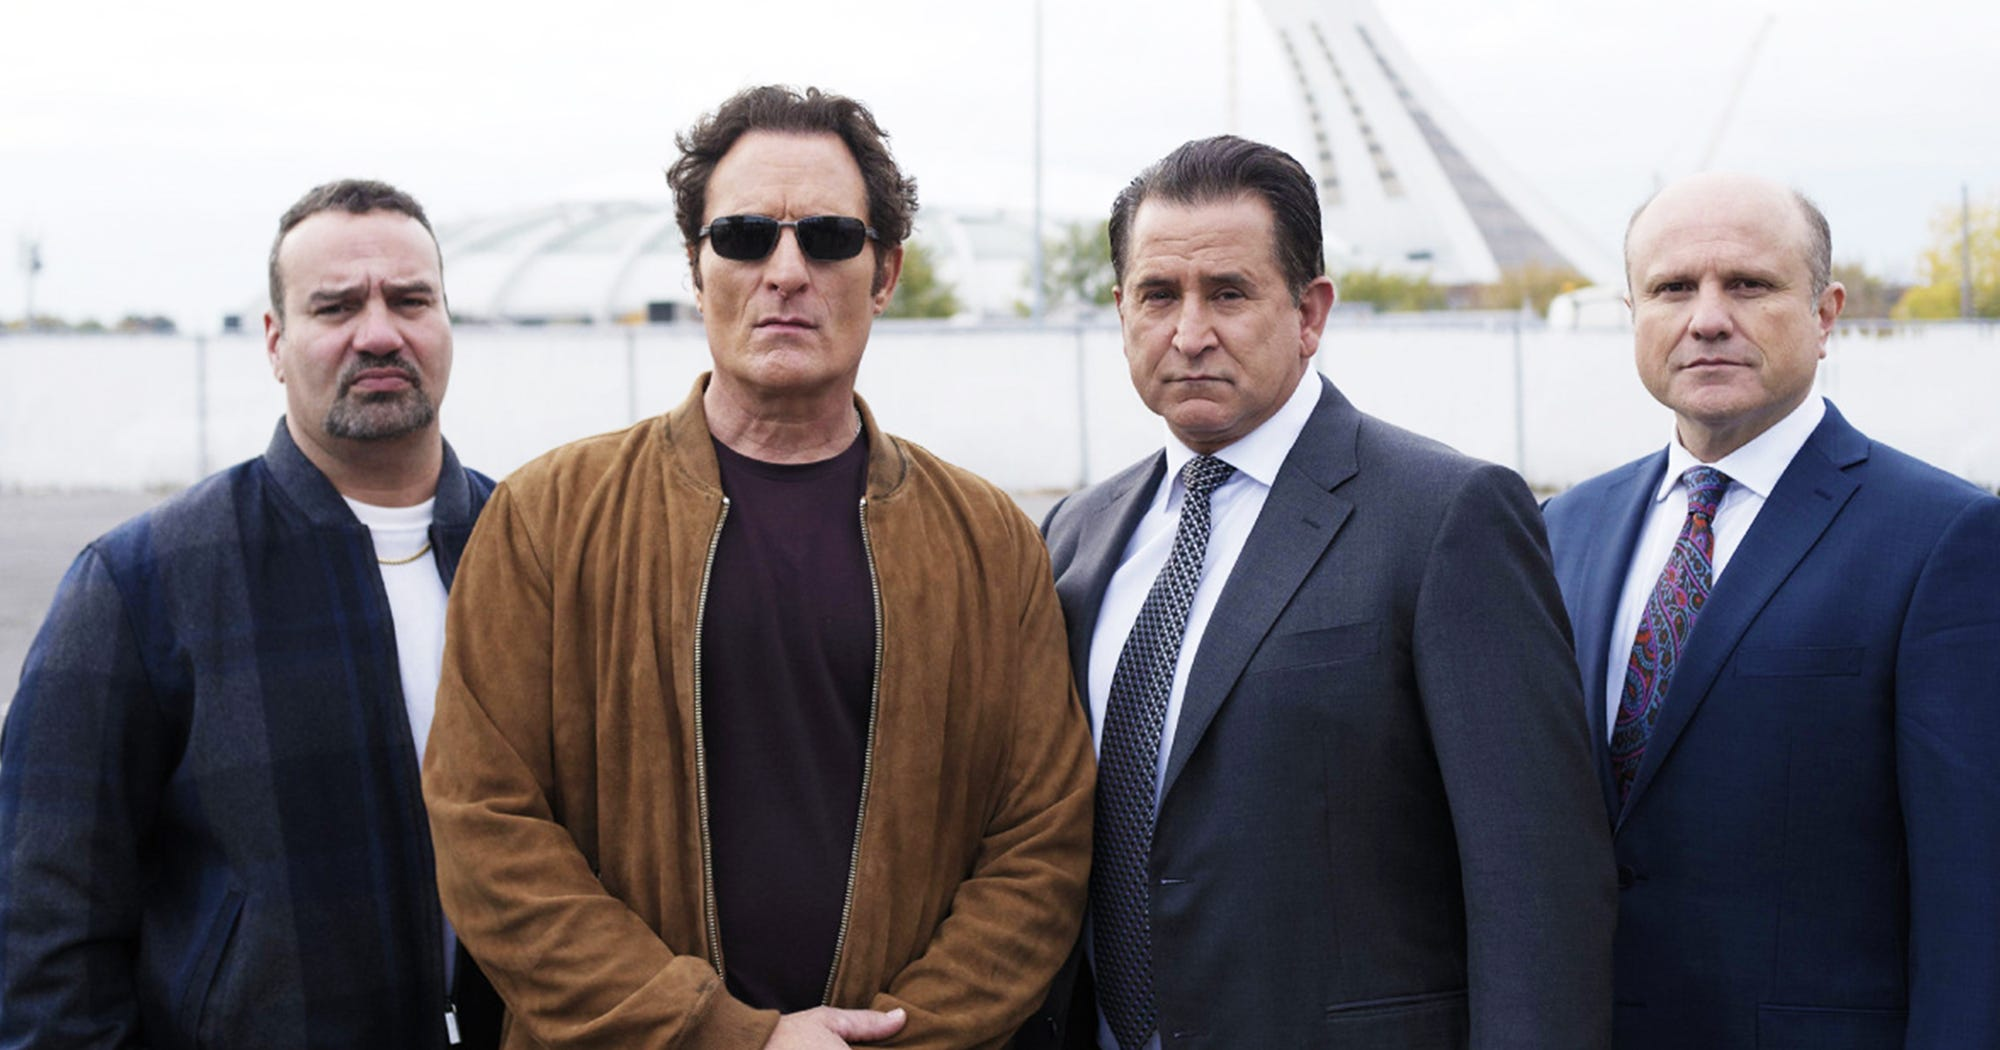 Bad Blood Rizzuto Family Based On The Real Canada Mafia